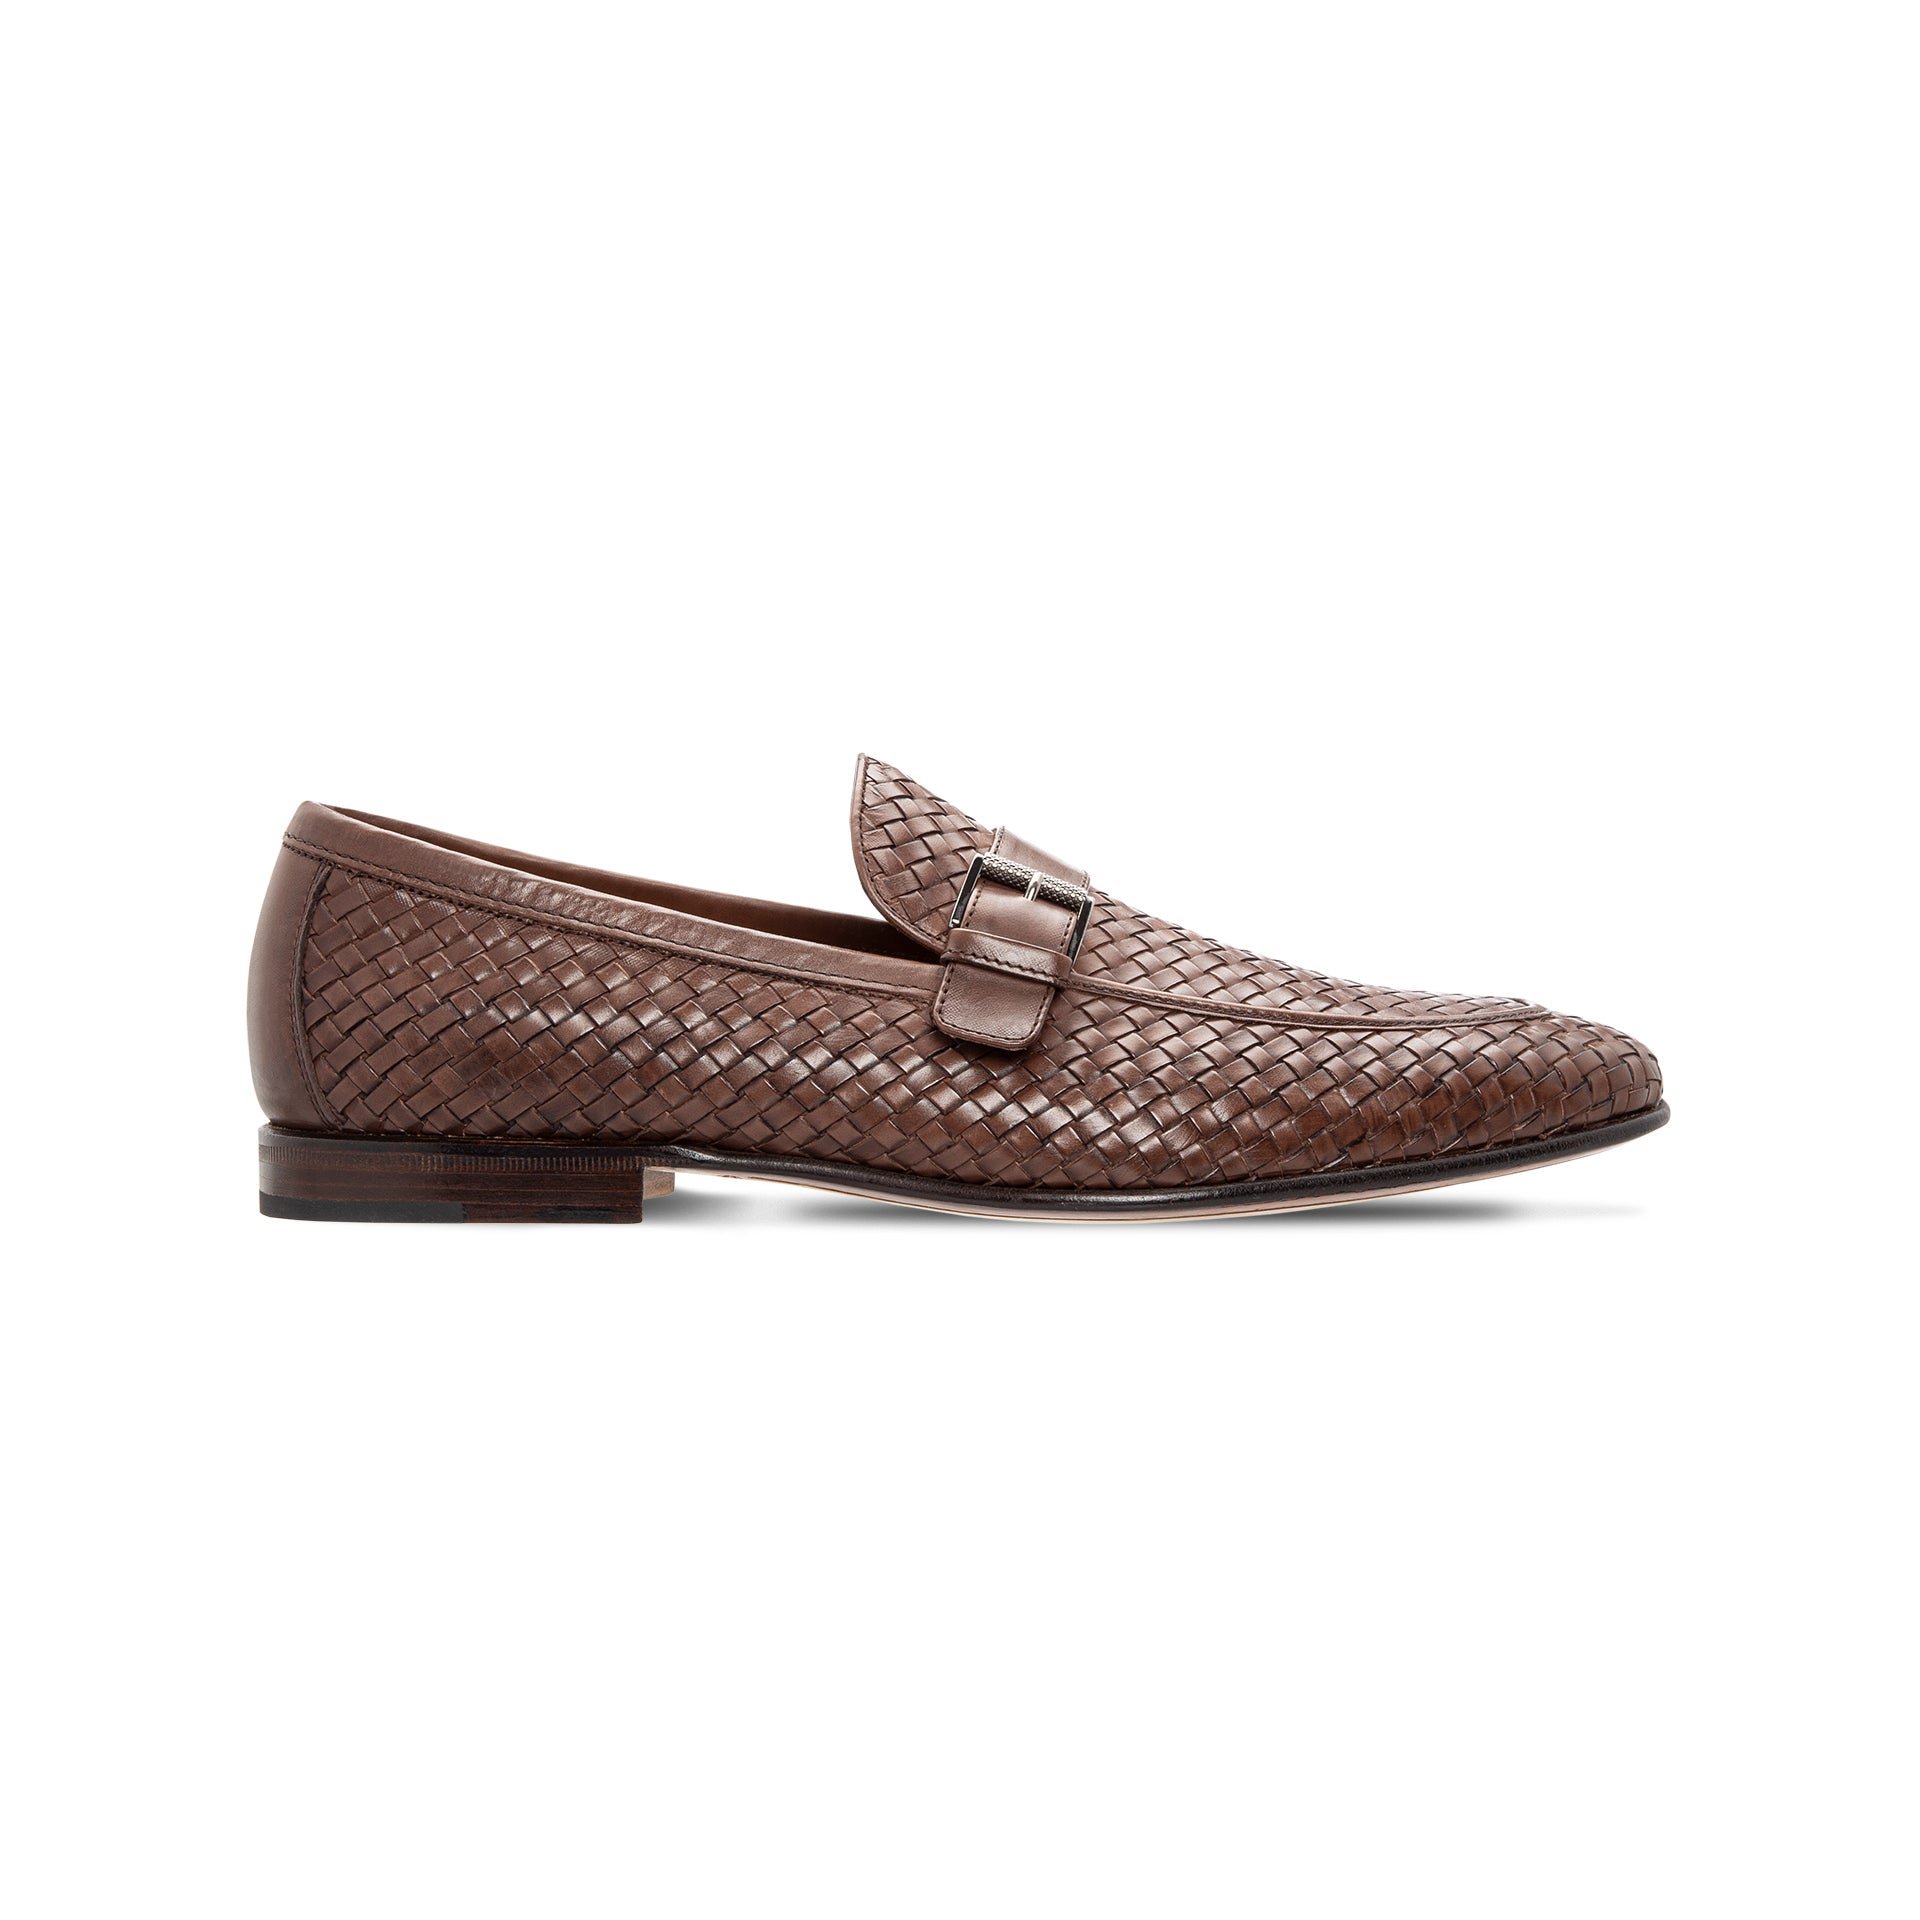 Moreschi Brown woven leather loafer Luxury italian shoes